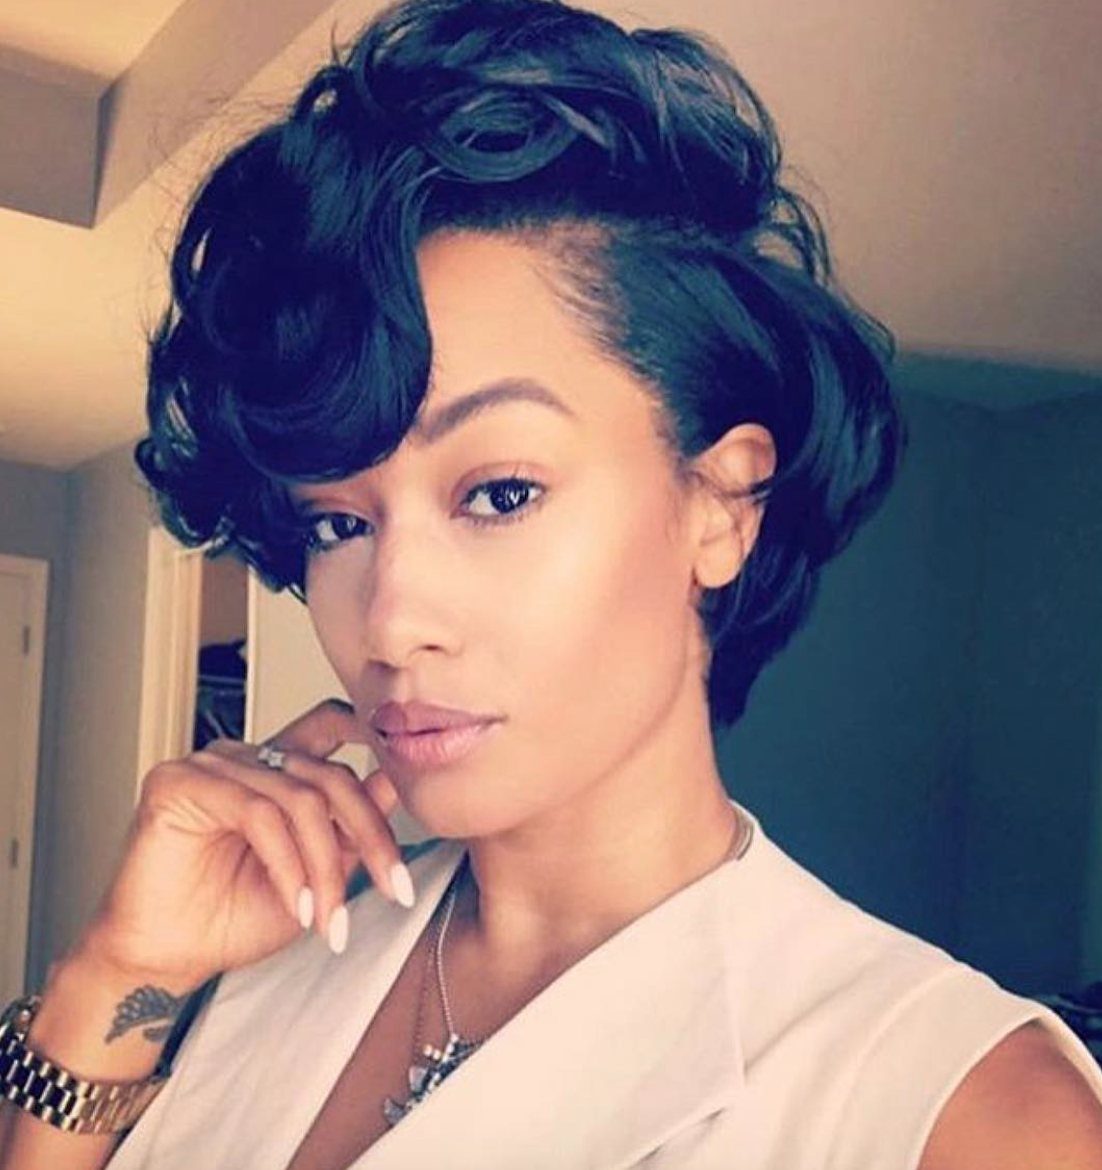 Short Hairstyles Black Hair Unique Beautiful Luvcrystalrenee  Httpsblackhairinformation